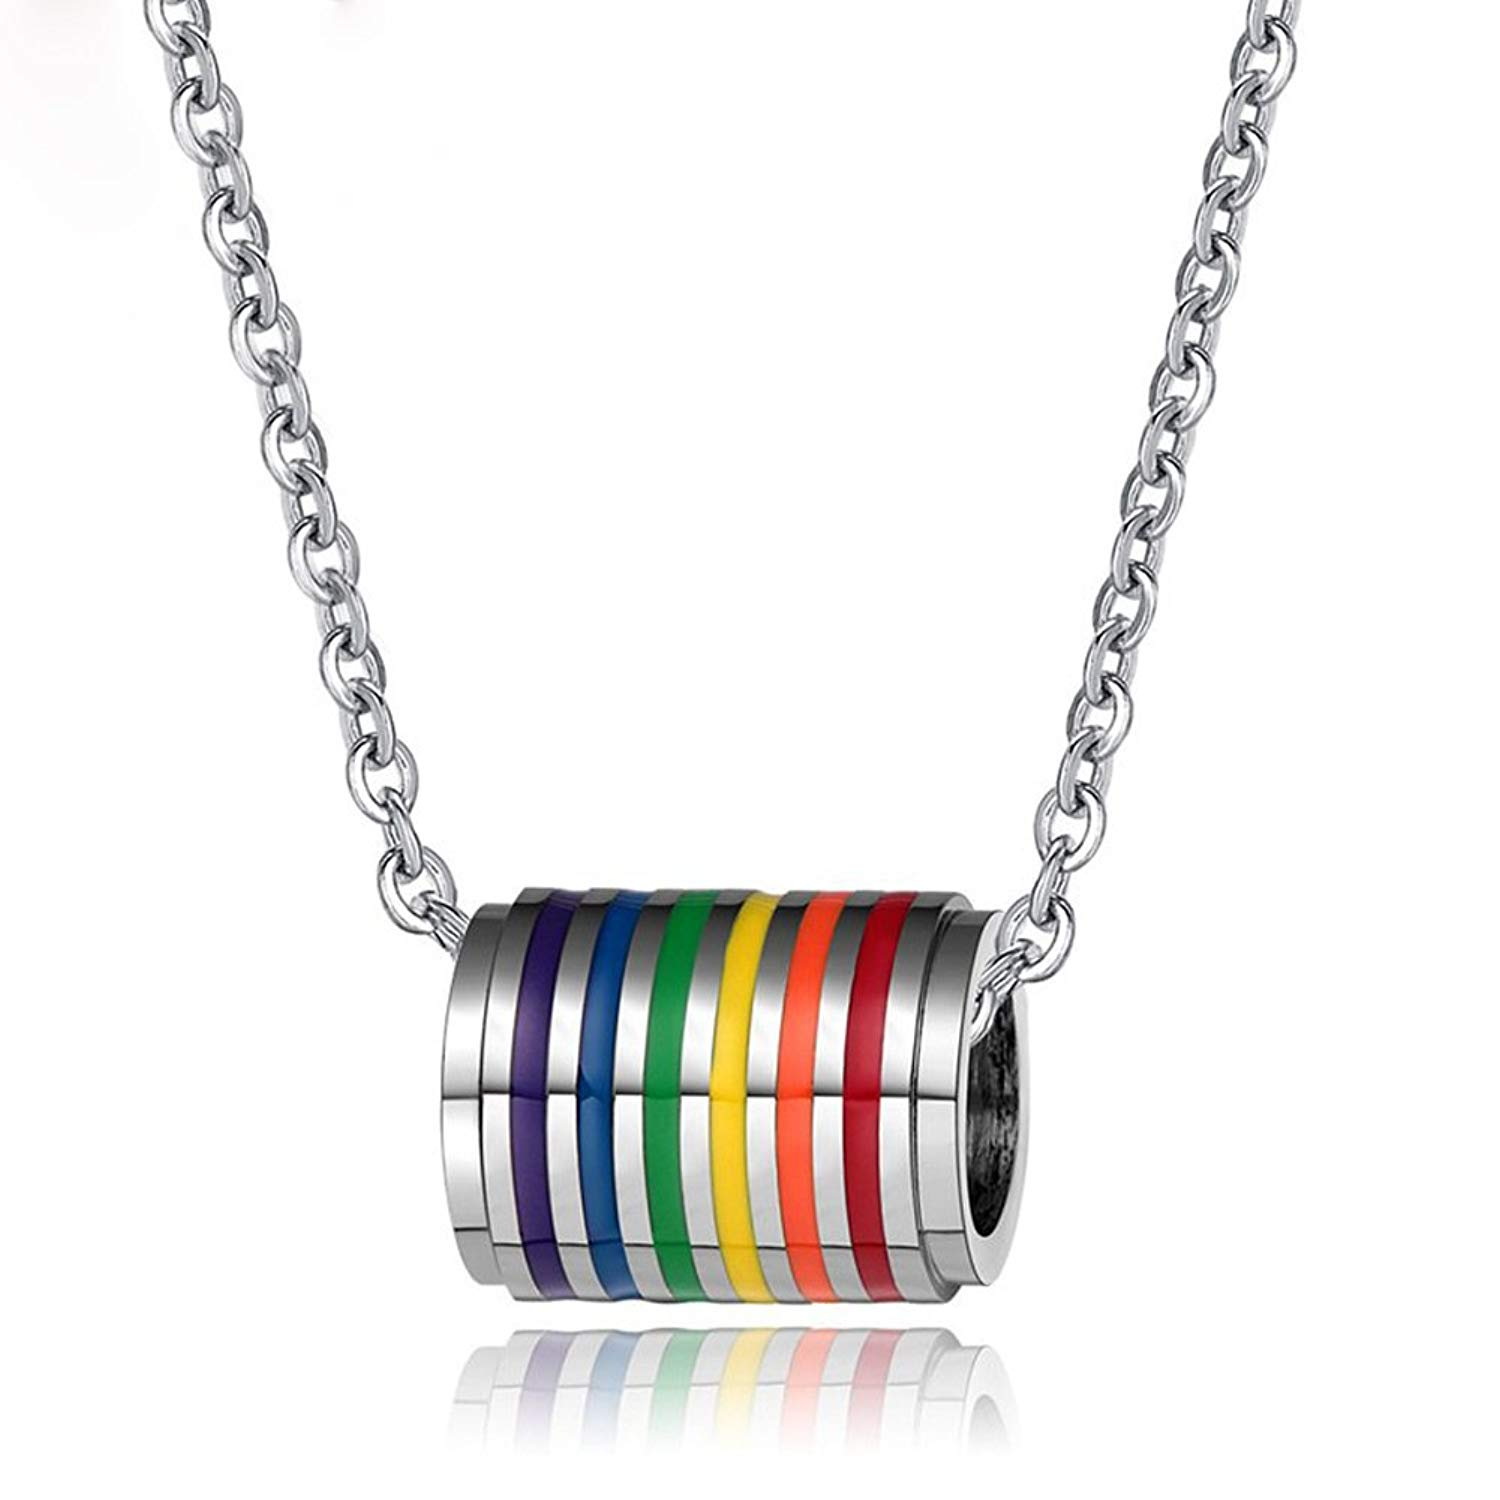 LF Stainless Steel Gay Pride Necklace Rainbow Pride LGBT Lesbian Gay Inspirational Friendship Pendant Necklaces with Gay Pride Flag Gift for Marriage Engagement IDAHO